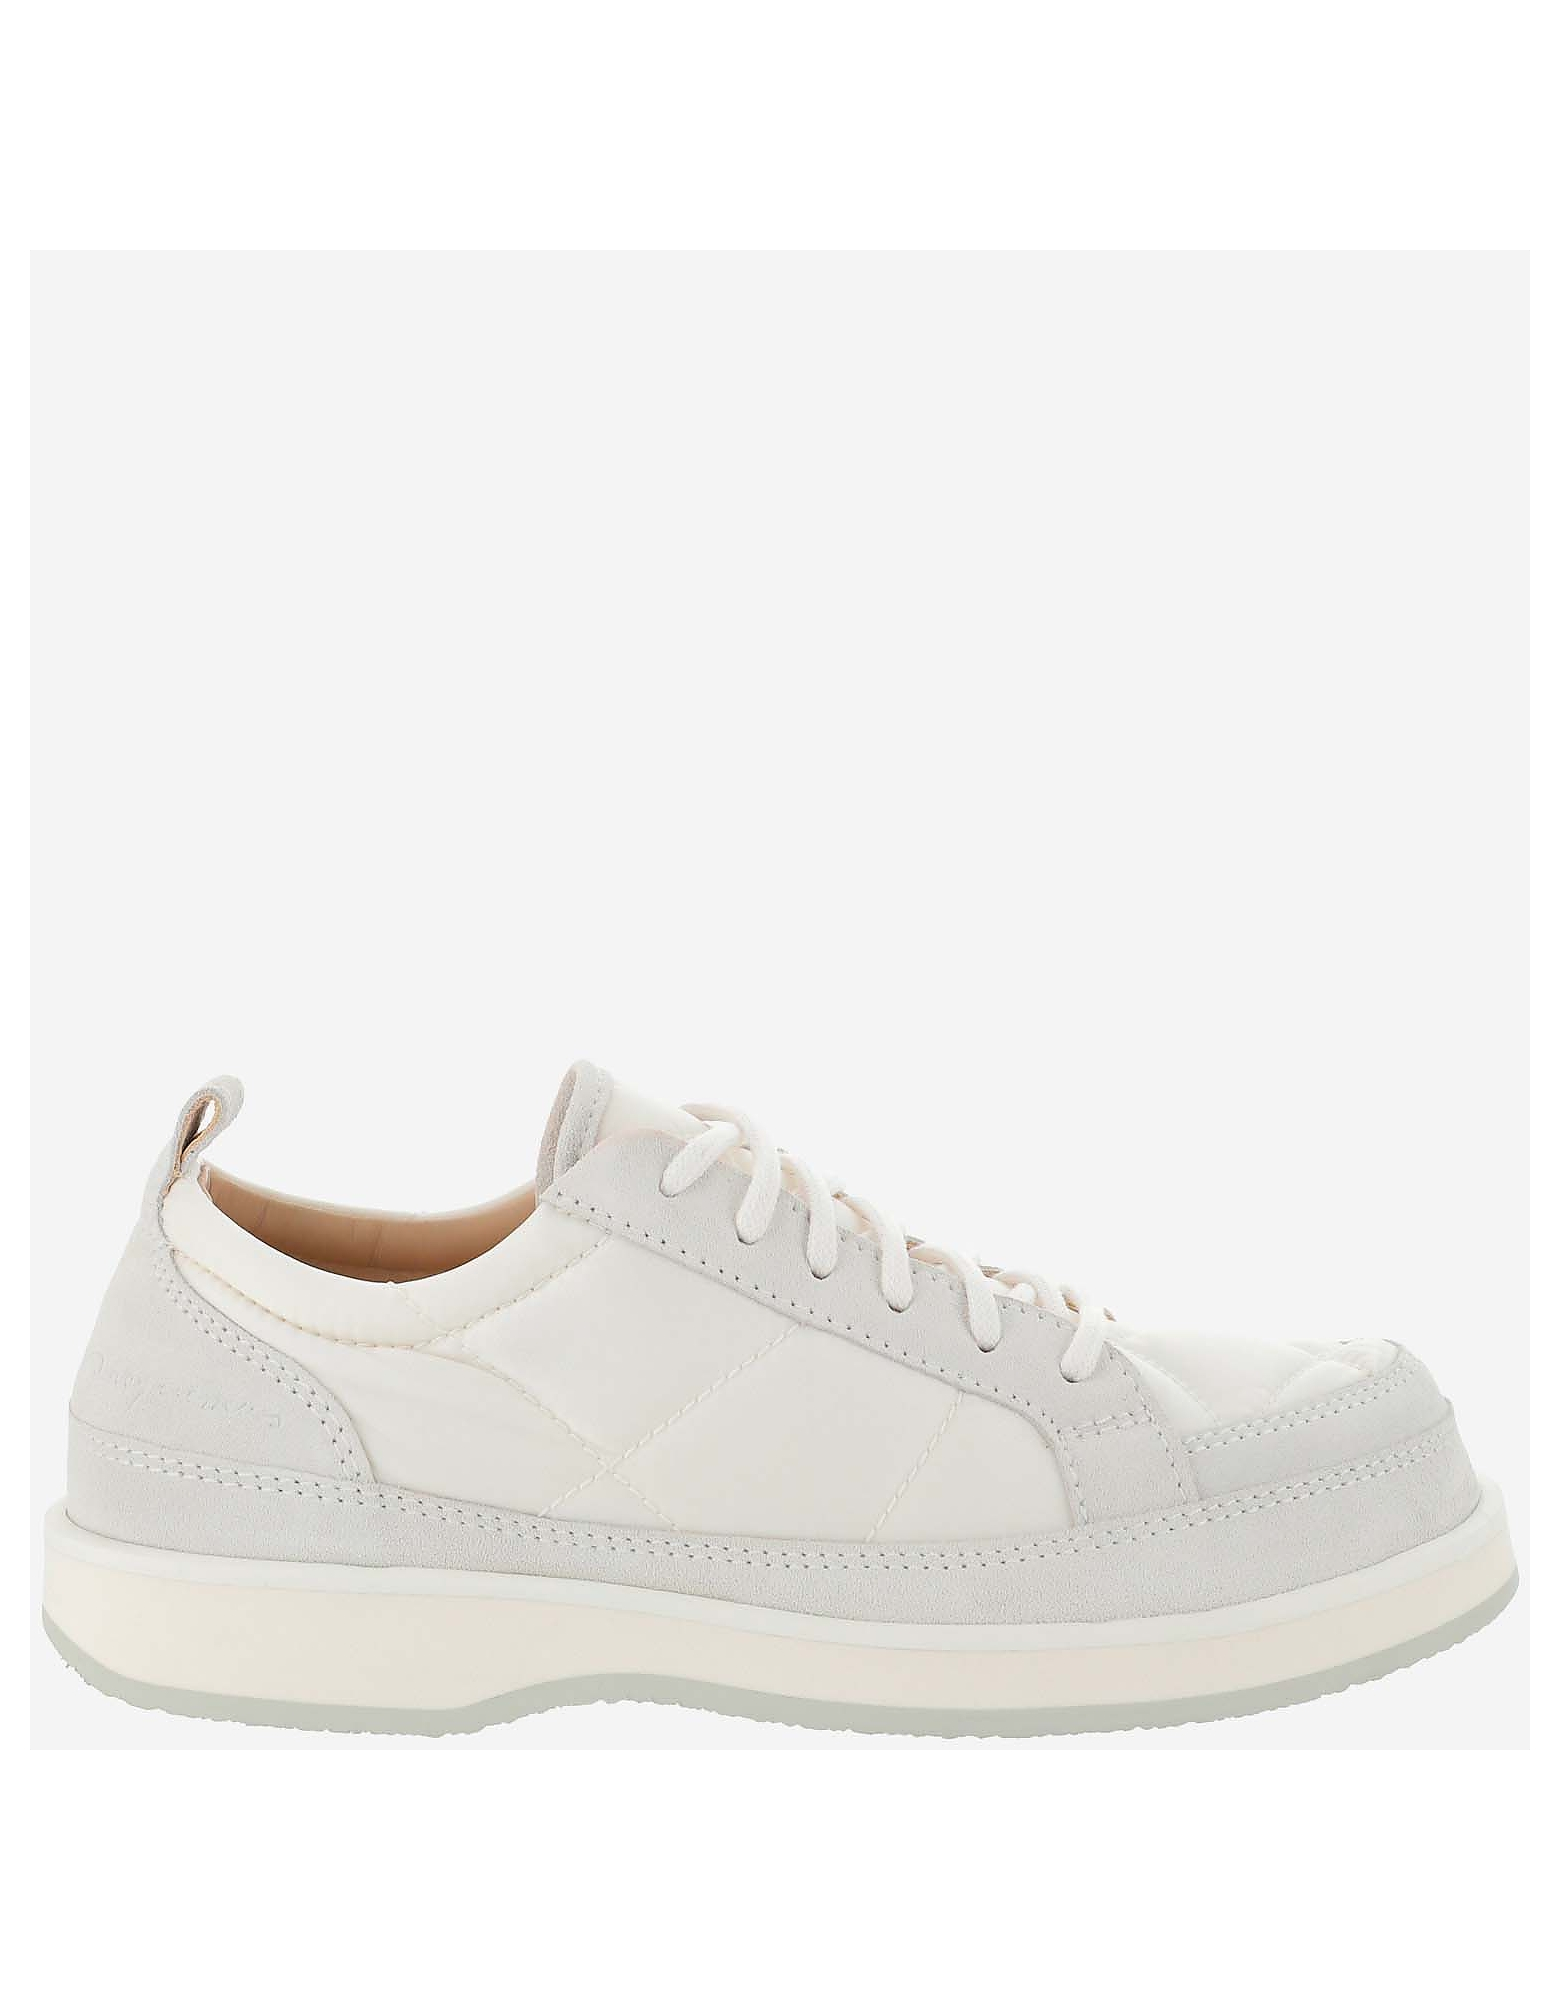 Jacquemus Designer Shoes, Light And Natural Low Top Sneakers